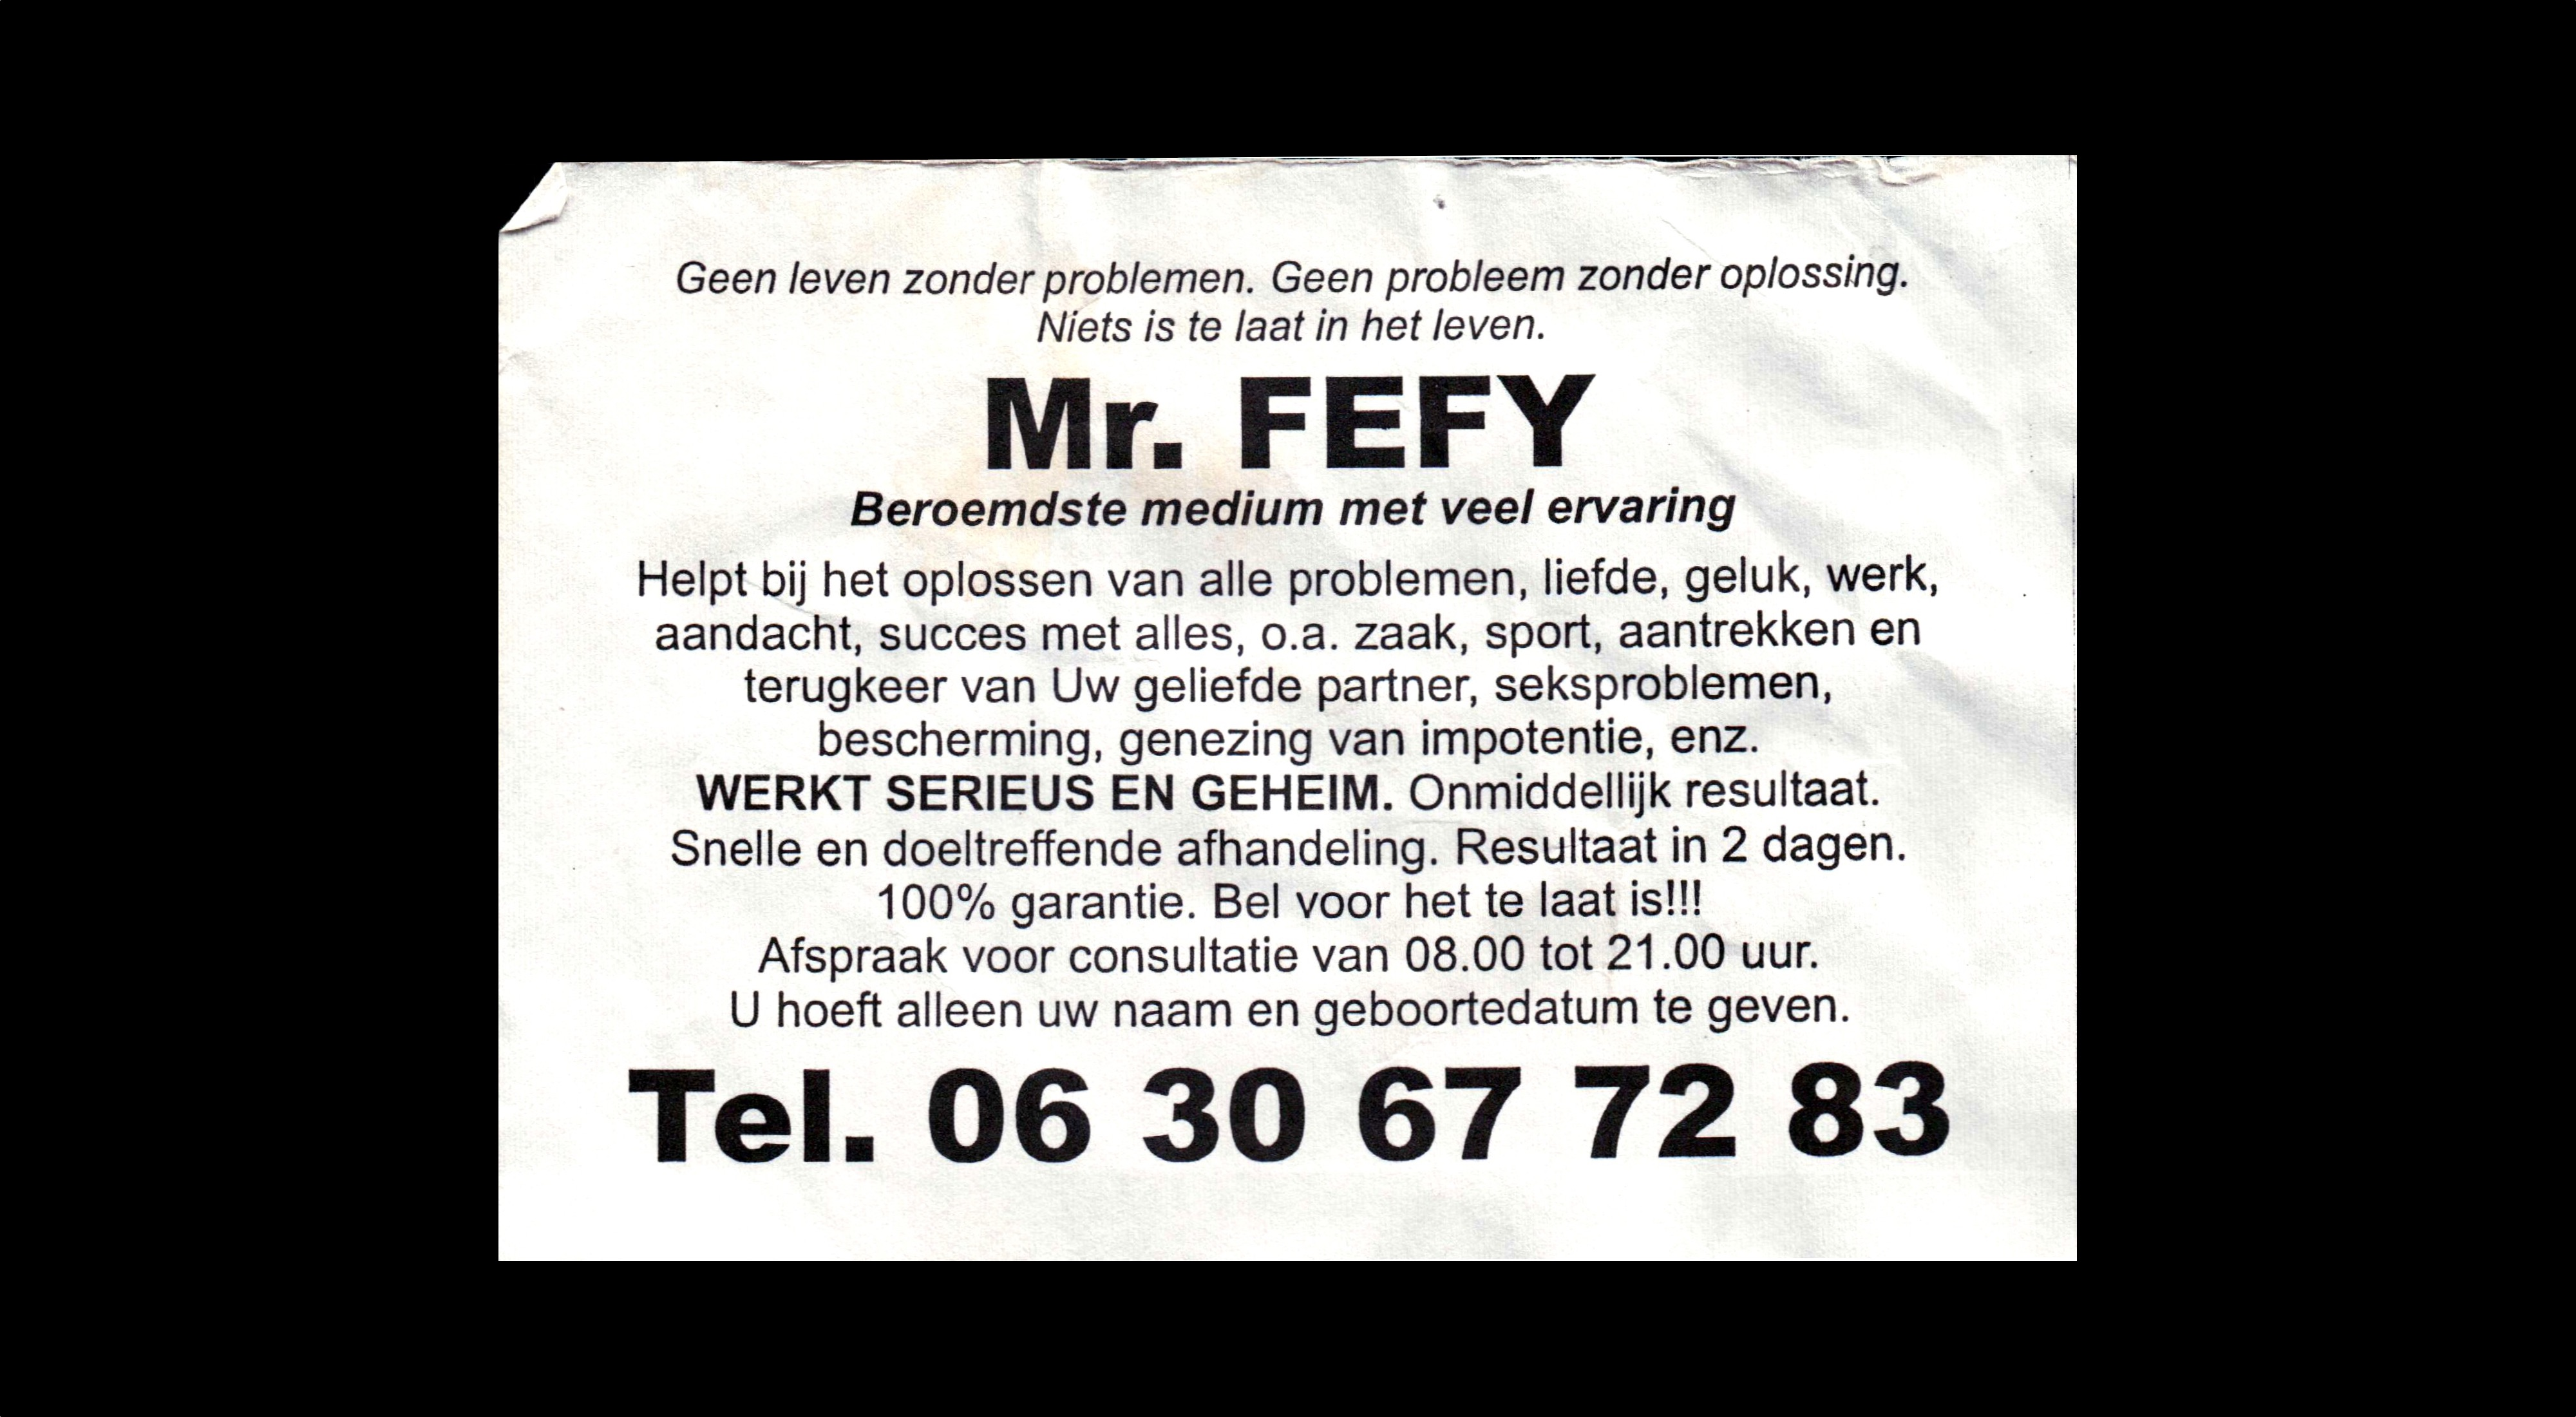 card of Mr FEFY